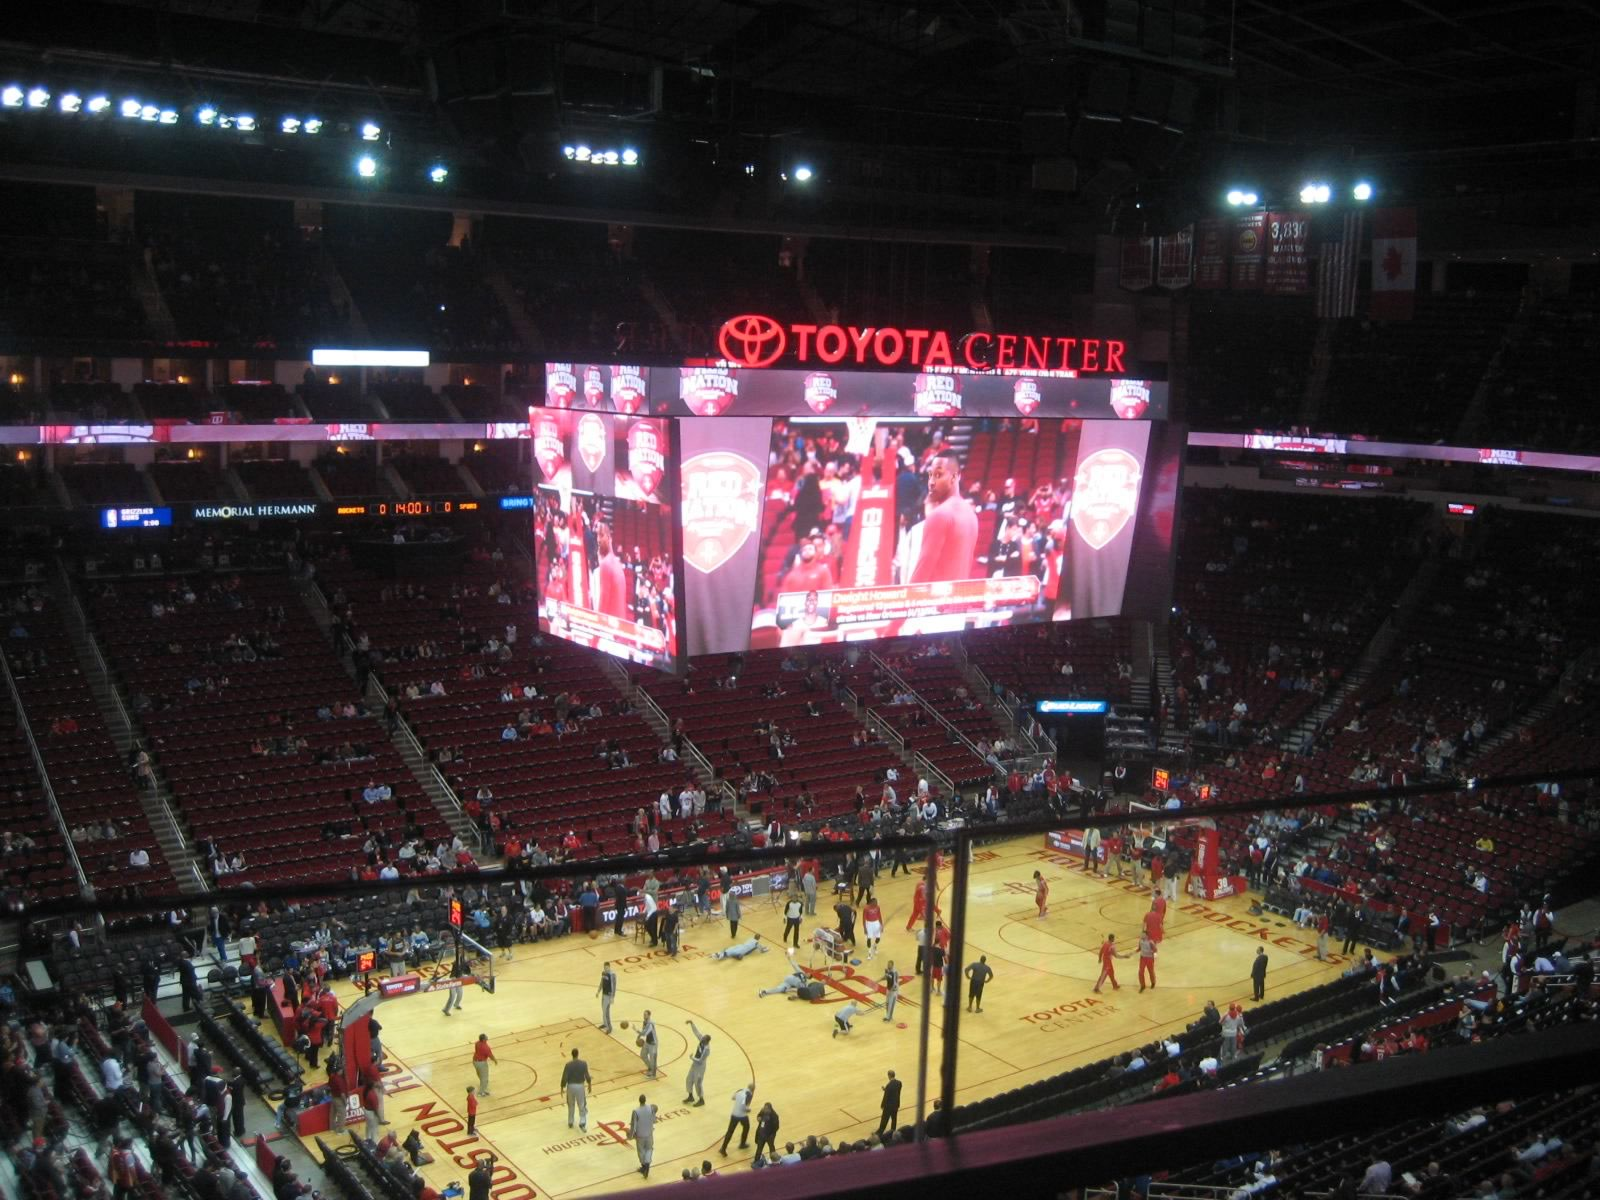 Seat View for Toyota Center Section 413, Row 1, Seat 4